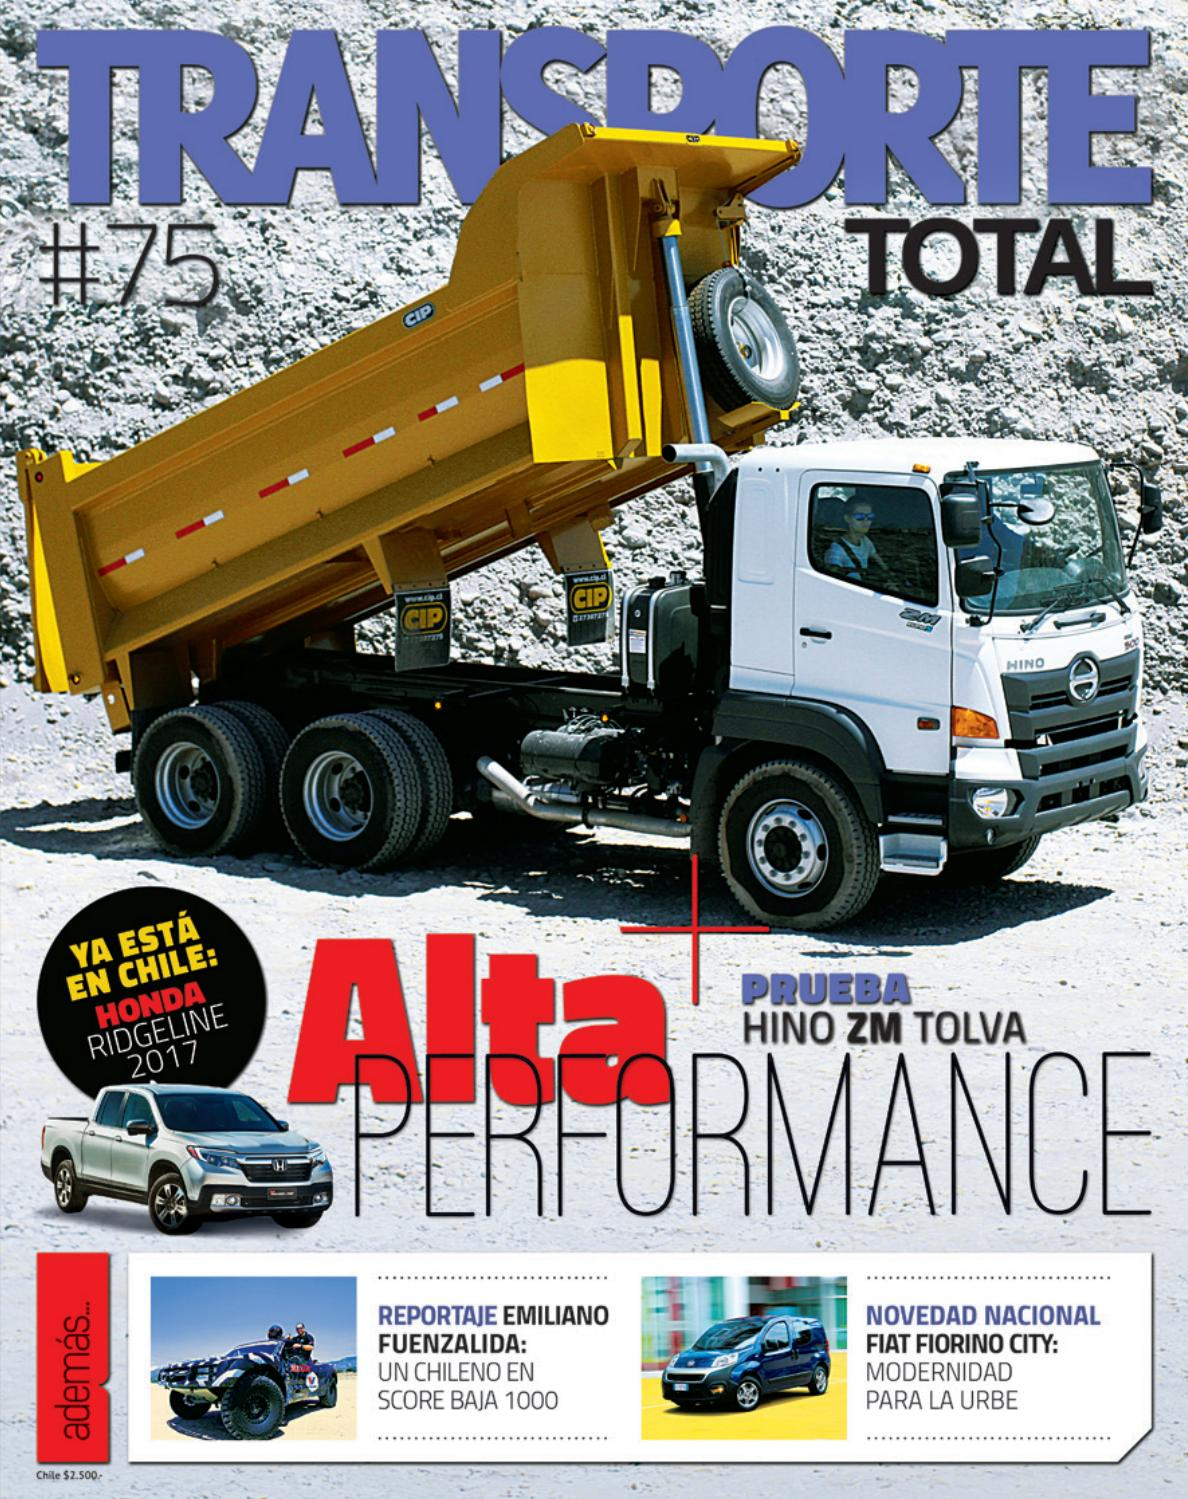 Revista Transporte Total Nº 75 (Enero 2017) by RS Chile - issuu